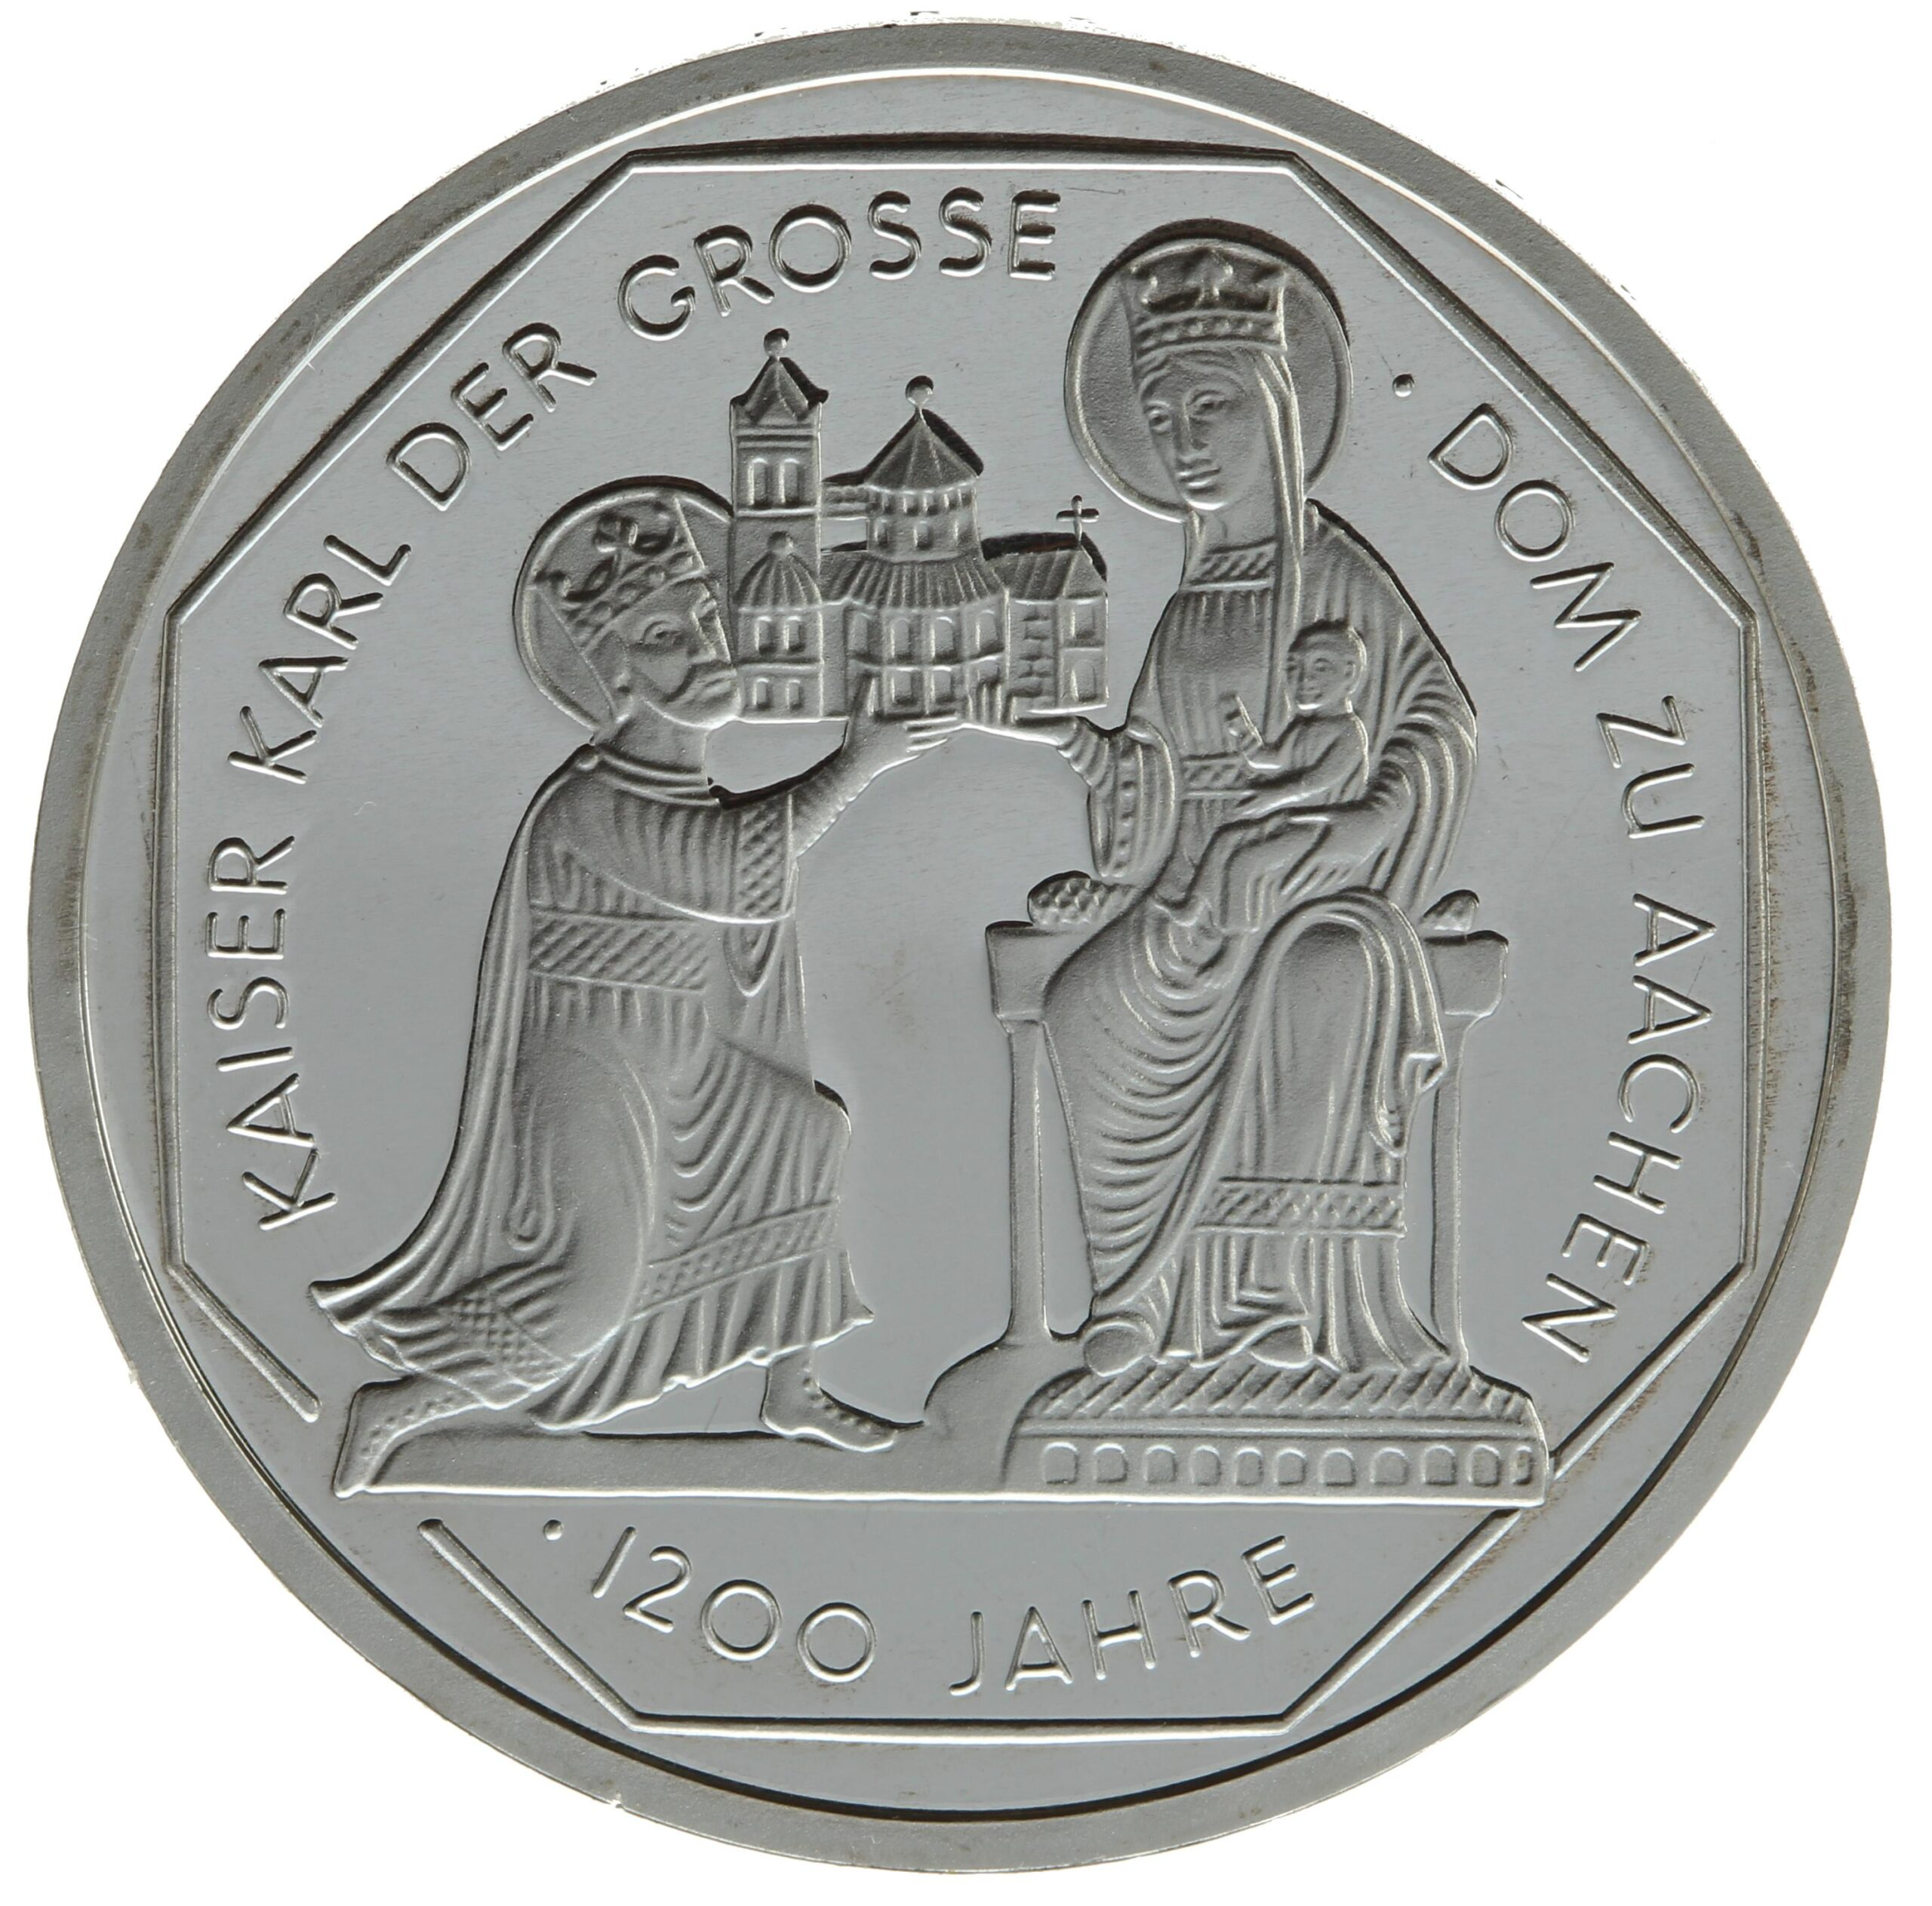 DE 10 Deutsche Mark 2000 J